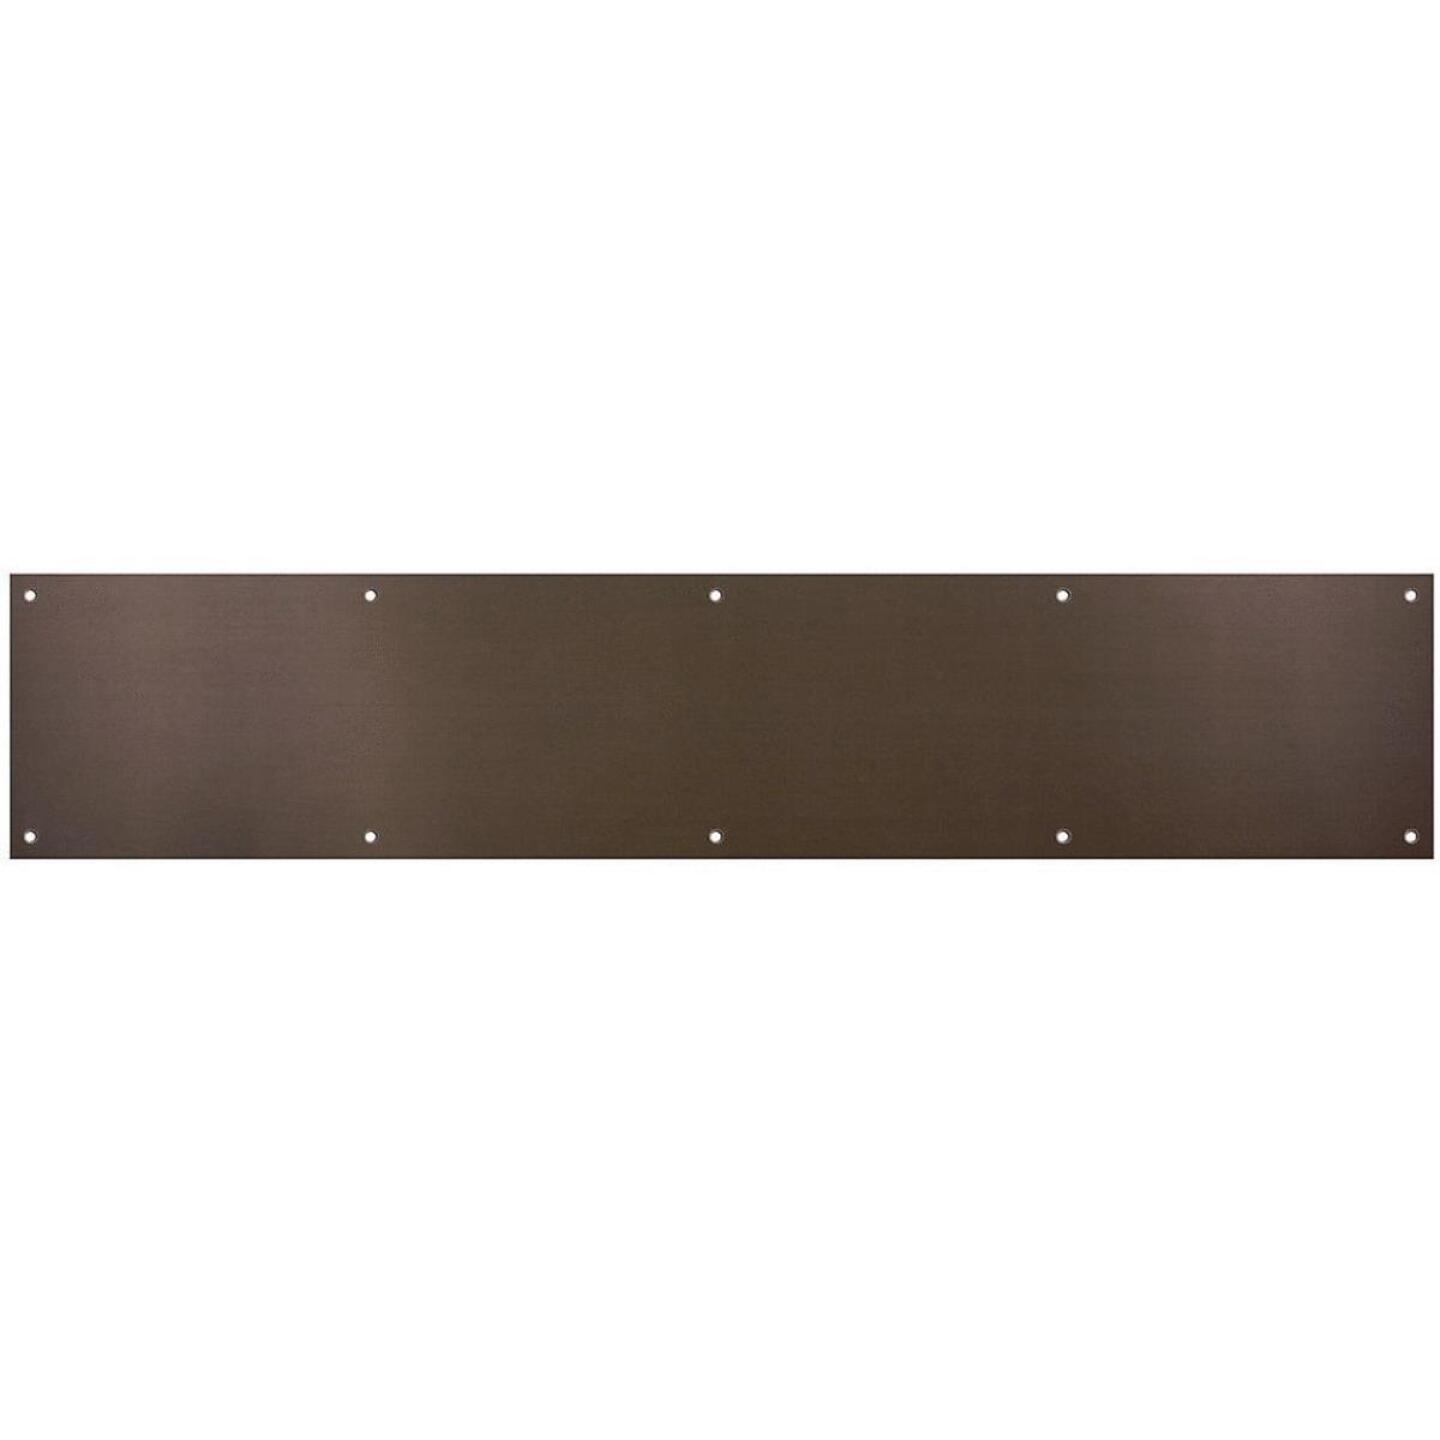 National 6 In. x 30 In. Oil-Rubbed Bronze Aluminum Kickplate Image 1